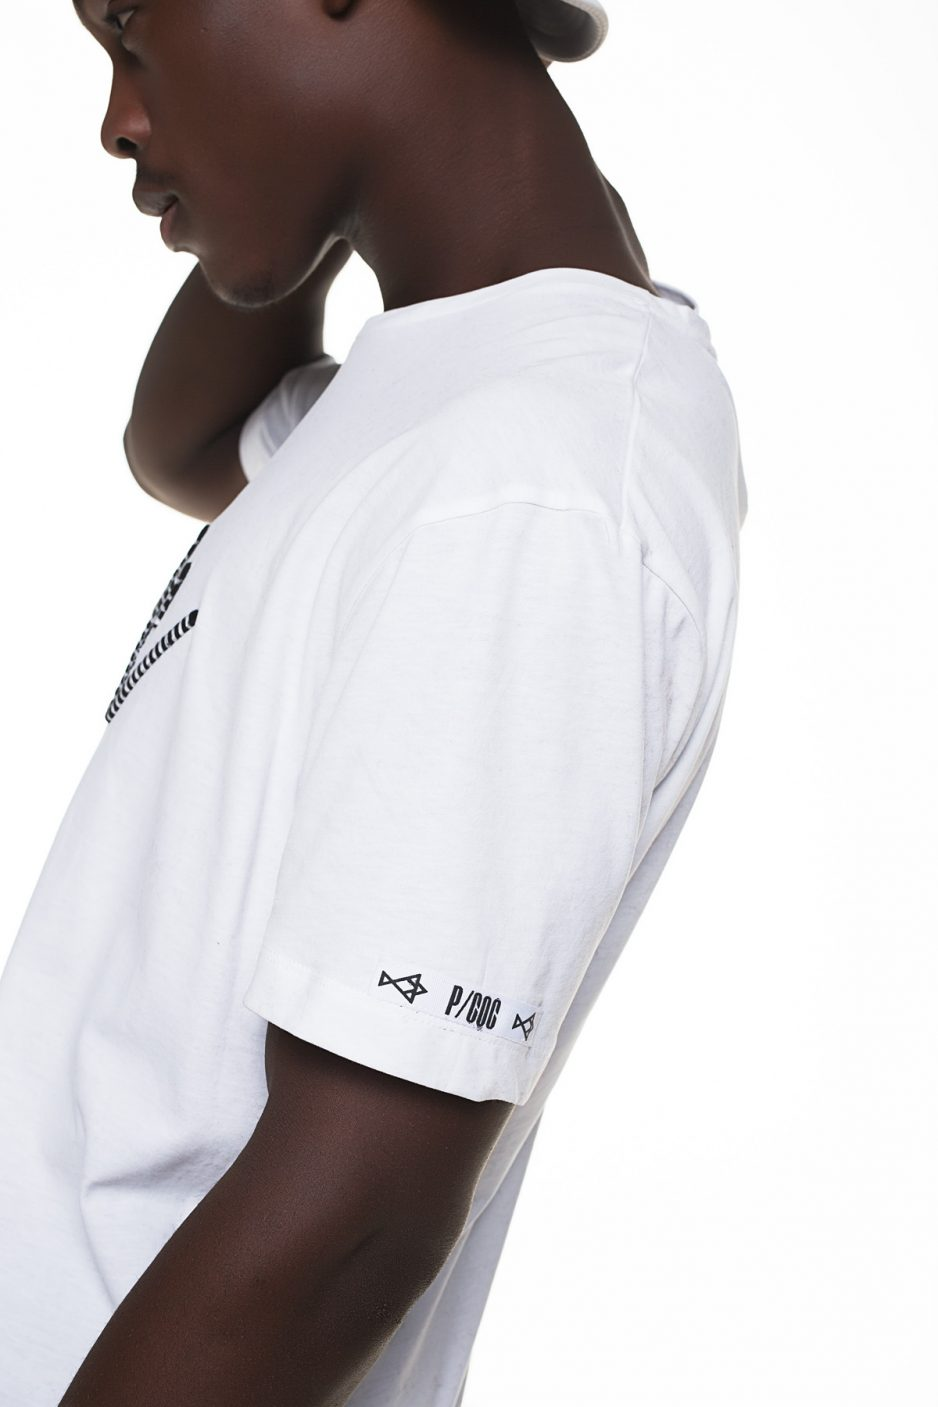 White t-shirt with P/COC embroidery